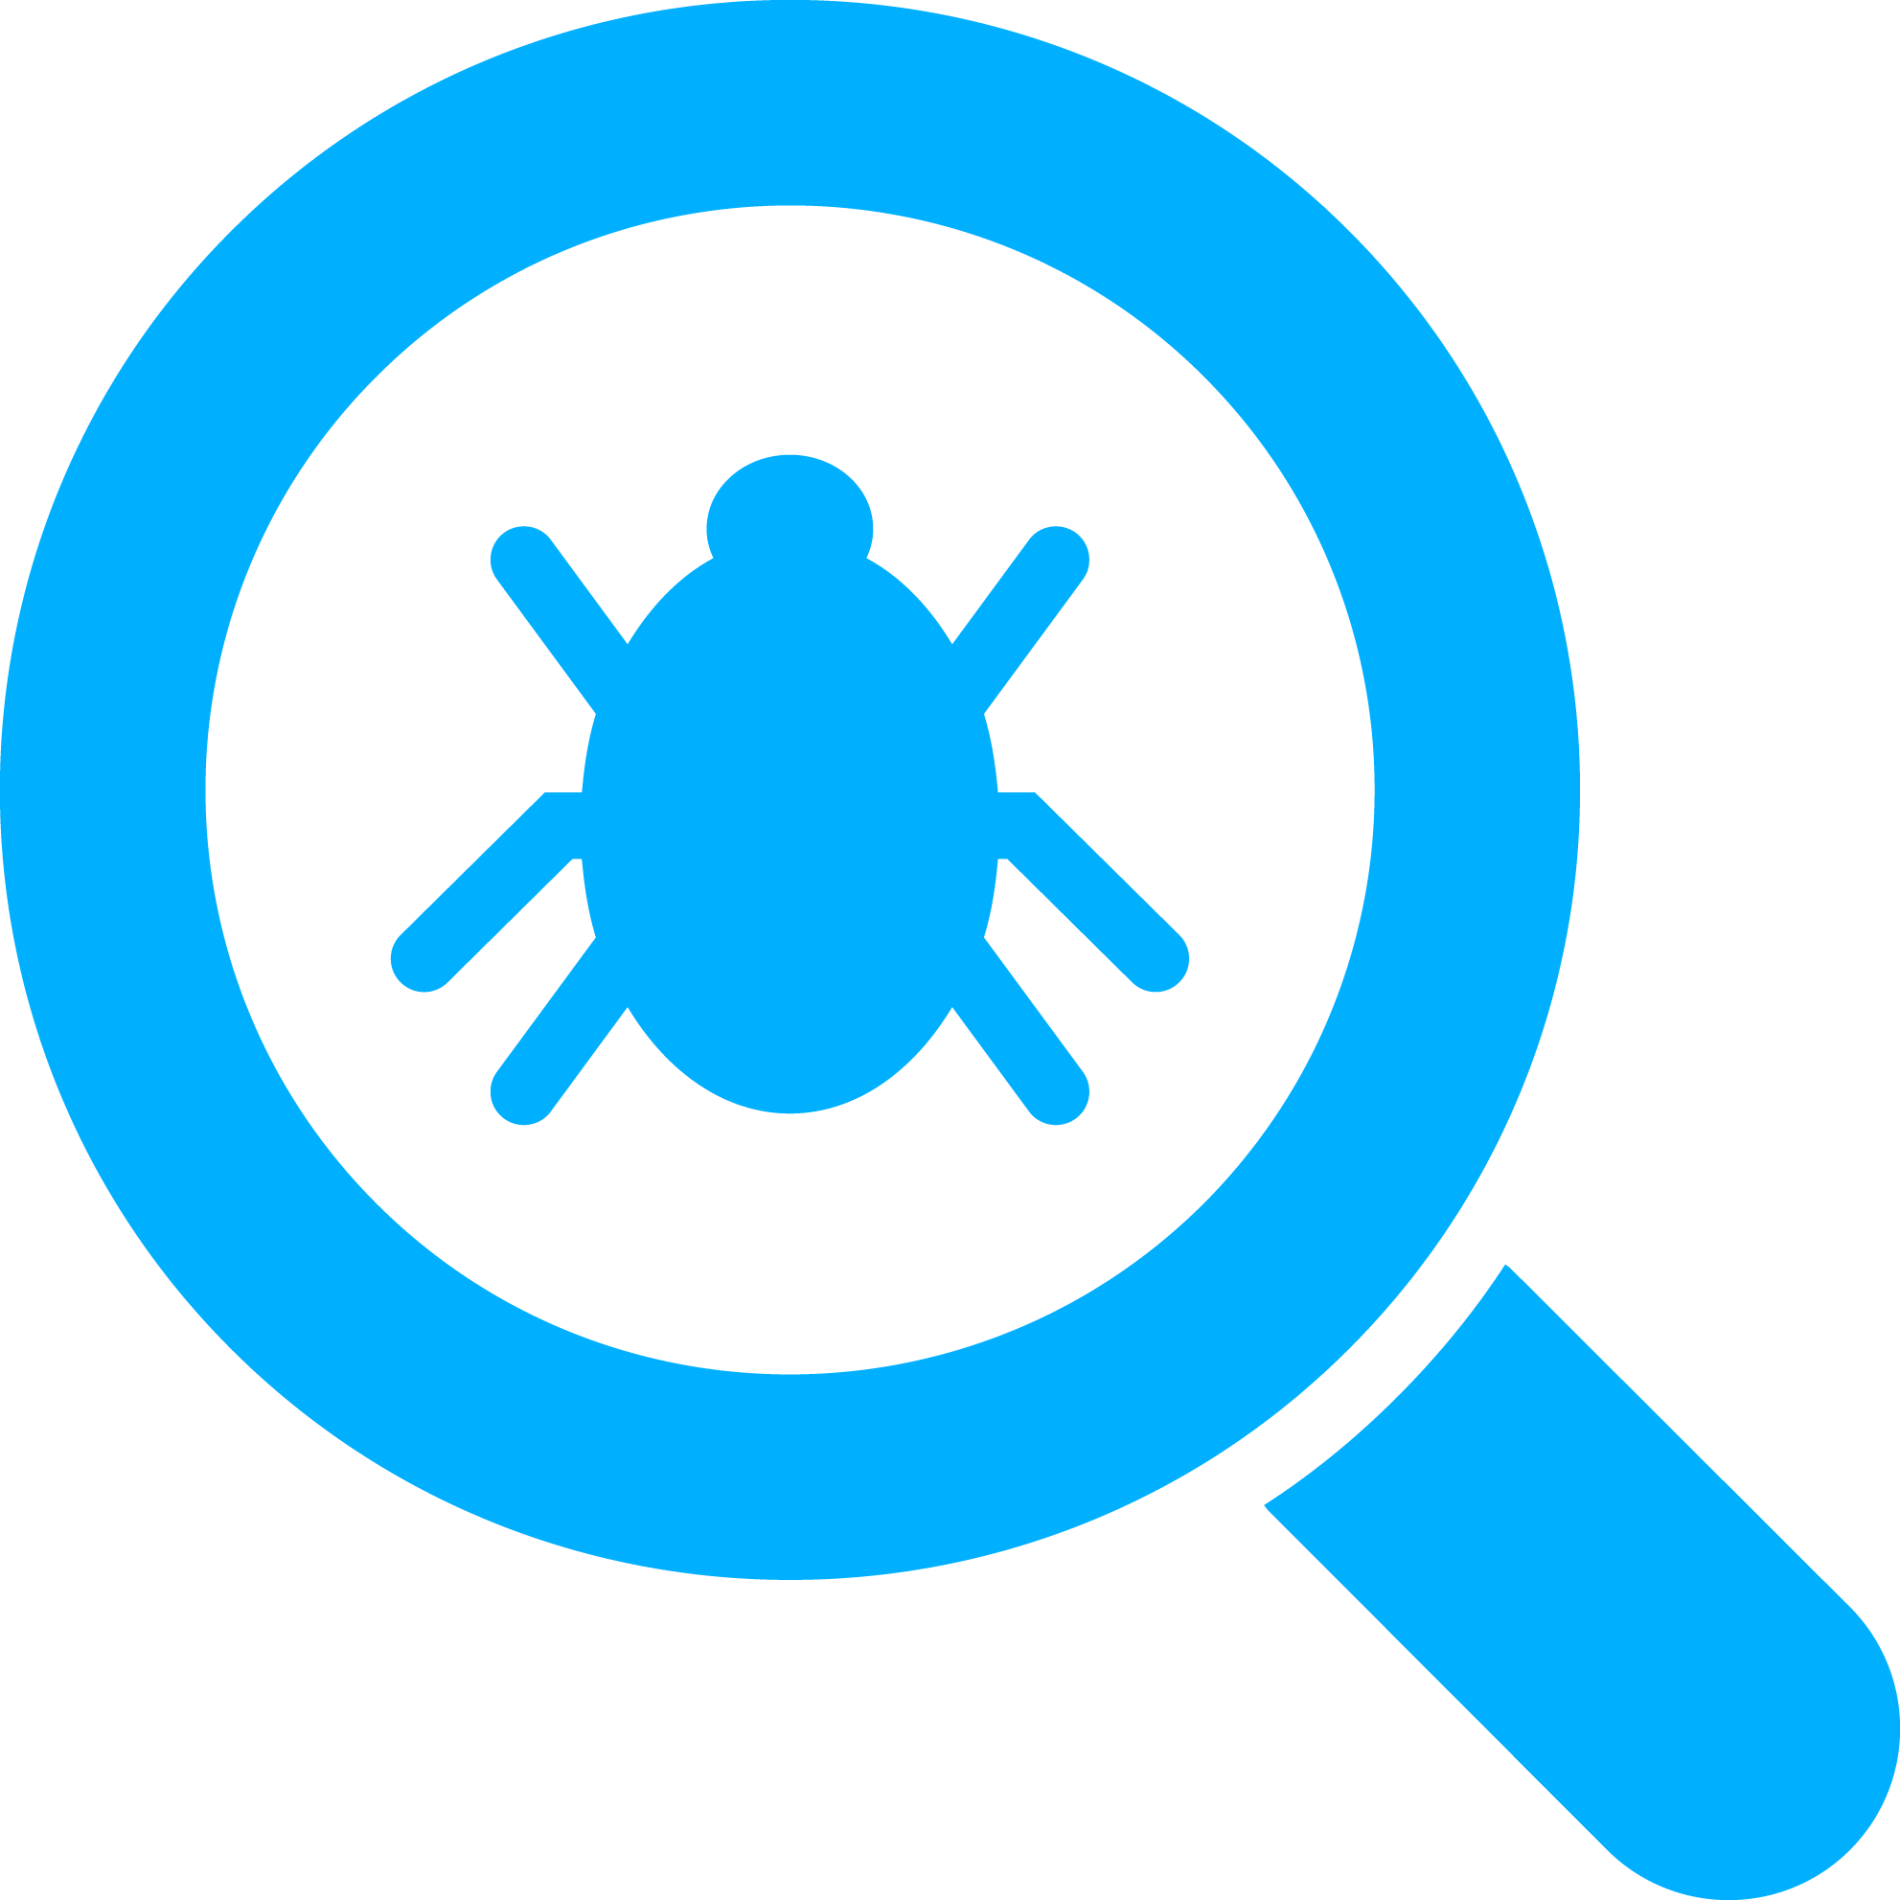 Germs clipart poor hygiene. Pittsburgh commercial pest control